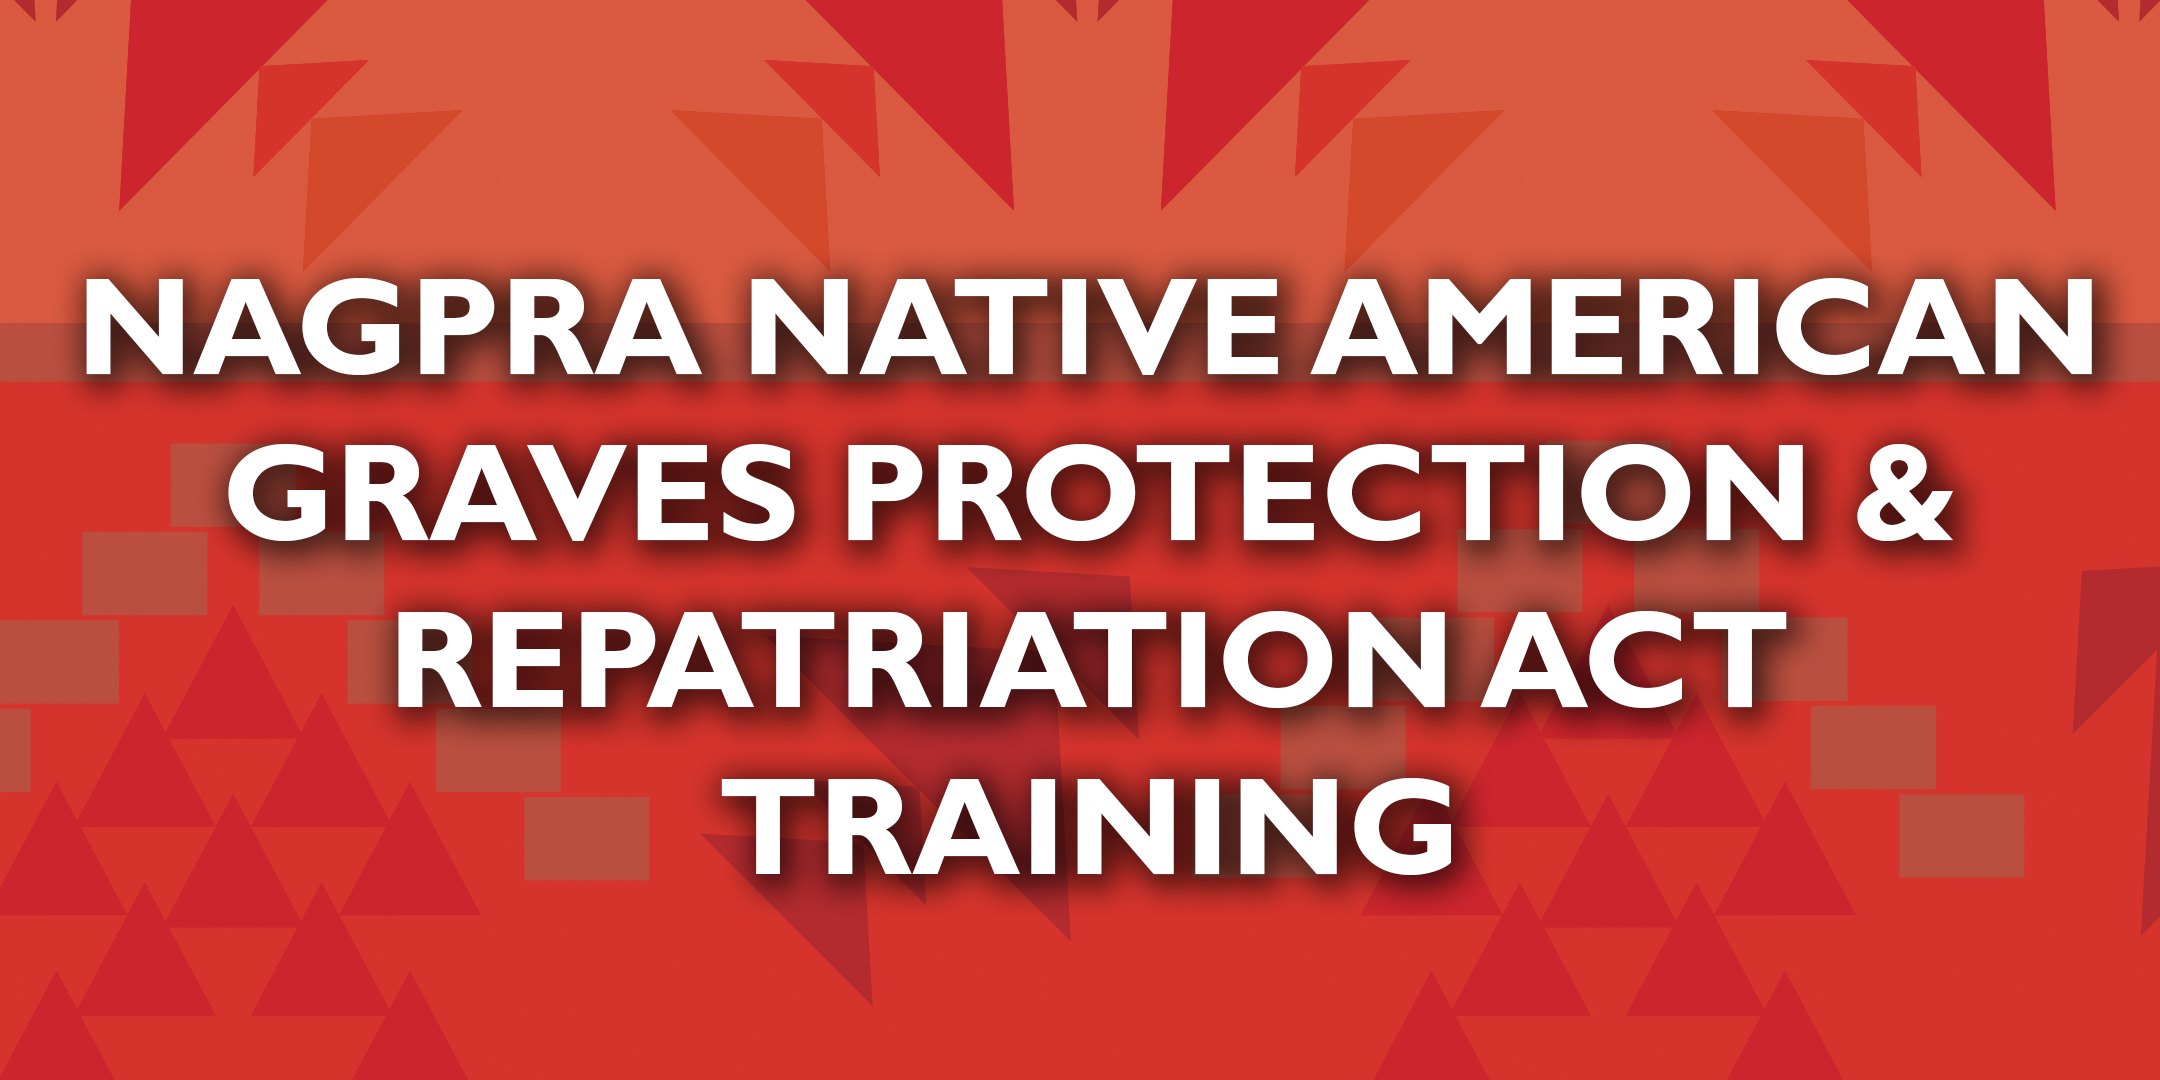 NAGPRA (Native American Graves Protection & Repatriation Act) Nov 15-16